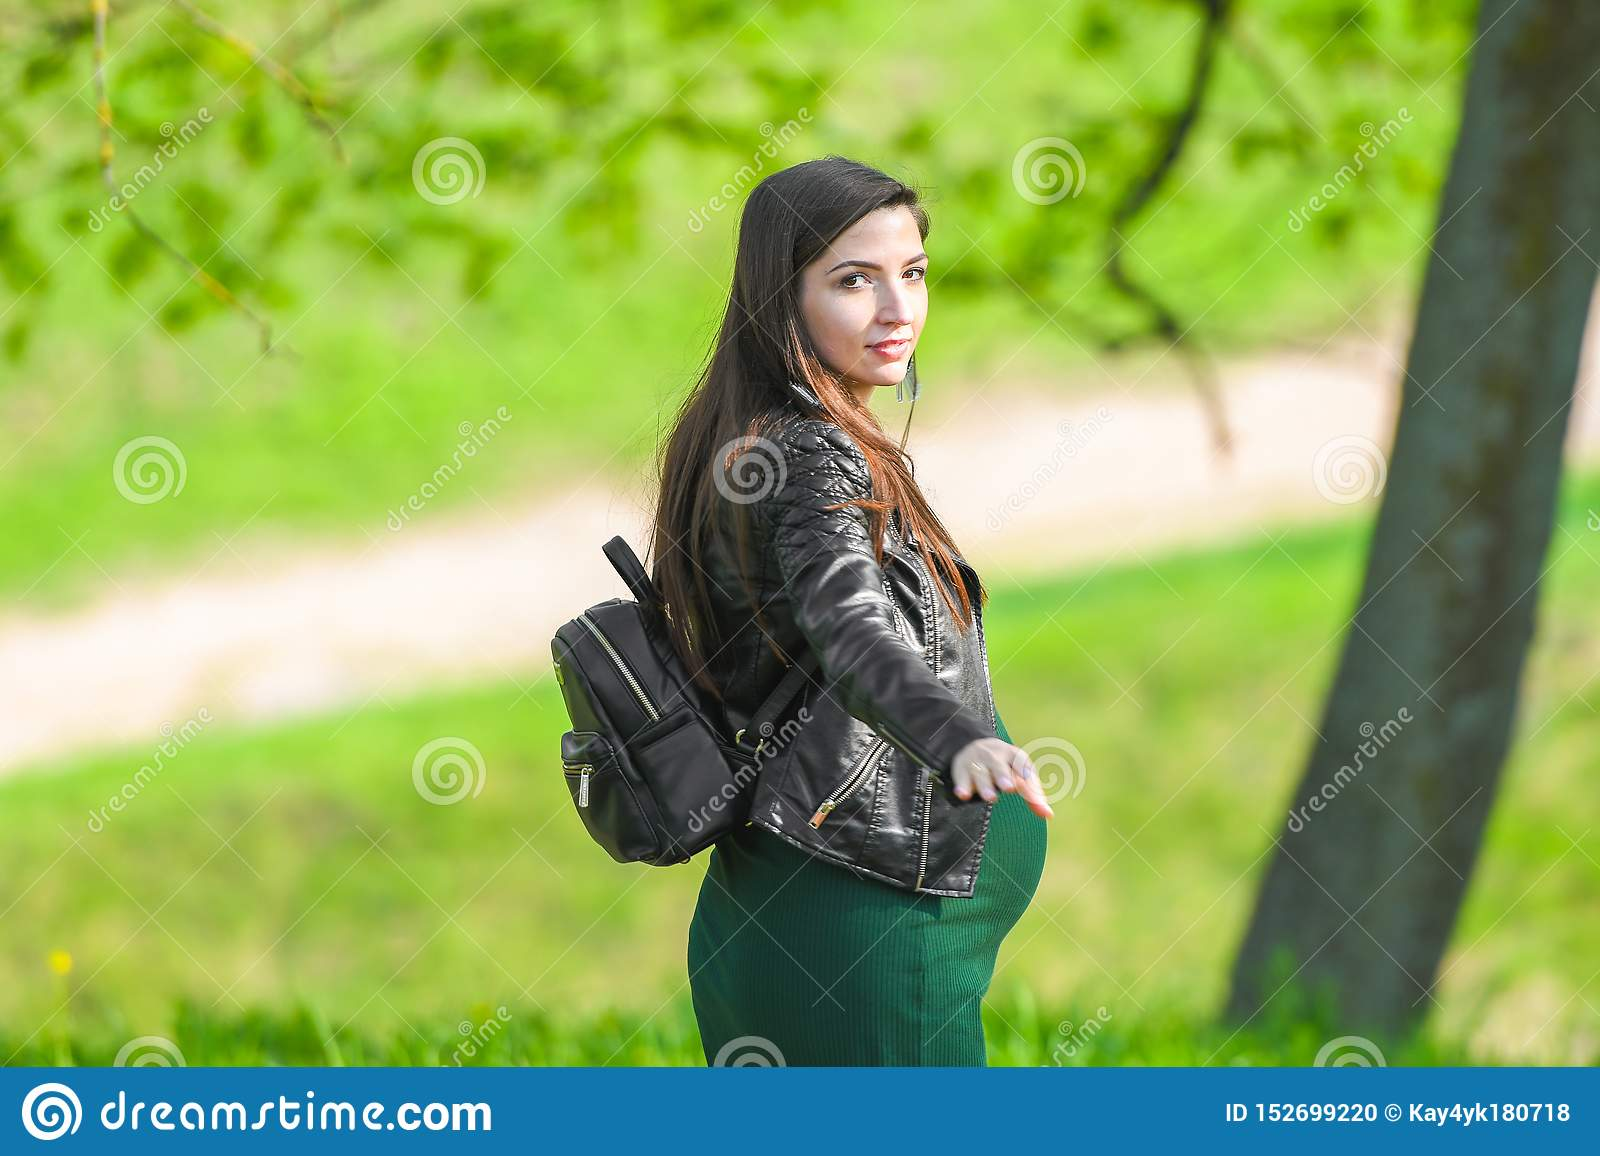 Pregnant girl enjoys life. portrait of a beautiful pregnant woman. The happy lady smiled and was delighted. Arms outstretched and